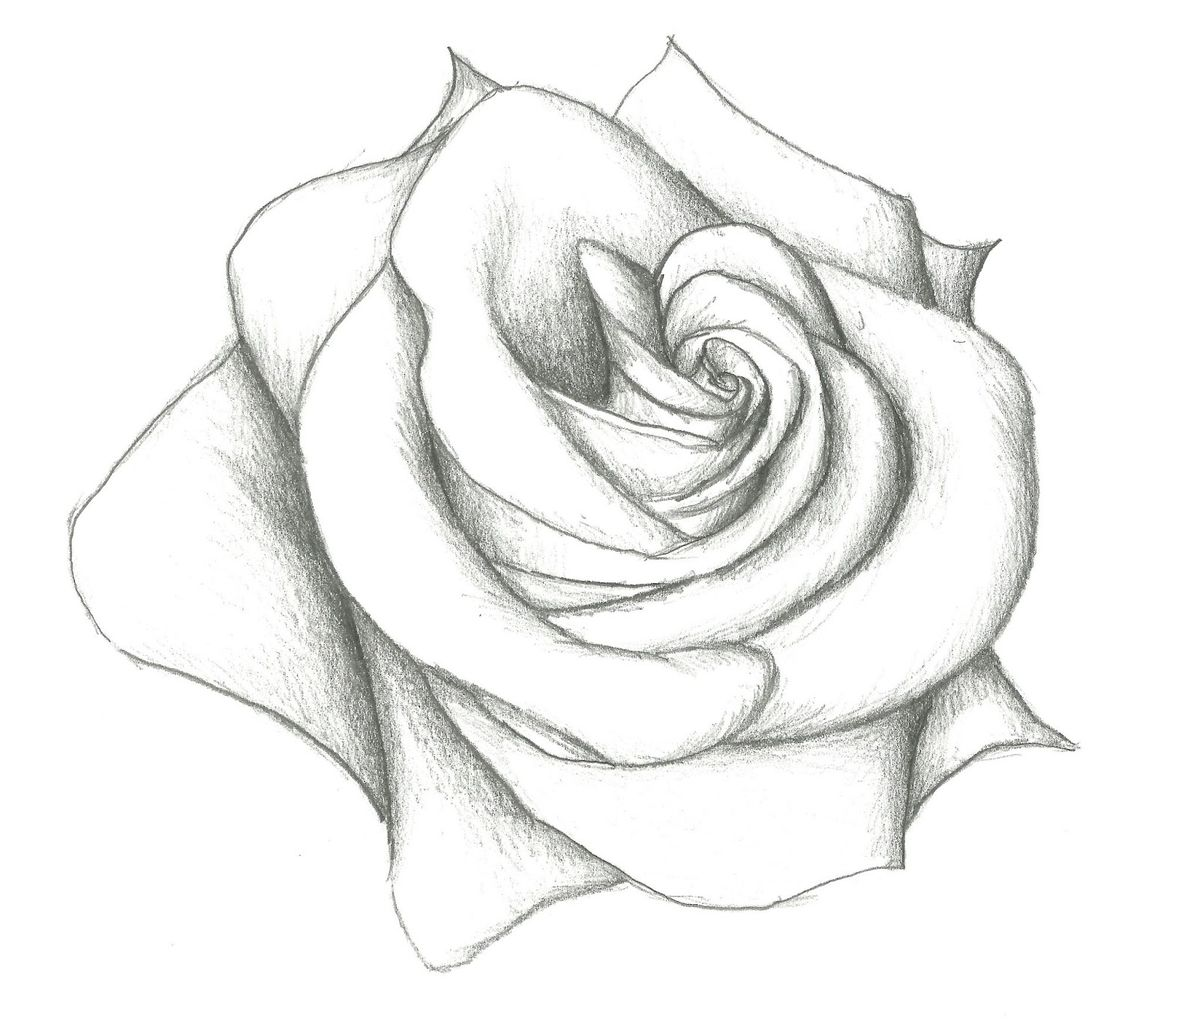 1200x1027 Drawing Roses Drawings As Well As How To Draw A Rose Step By